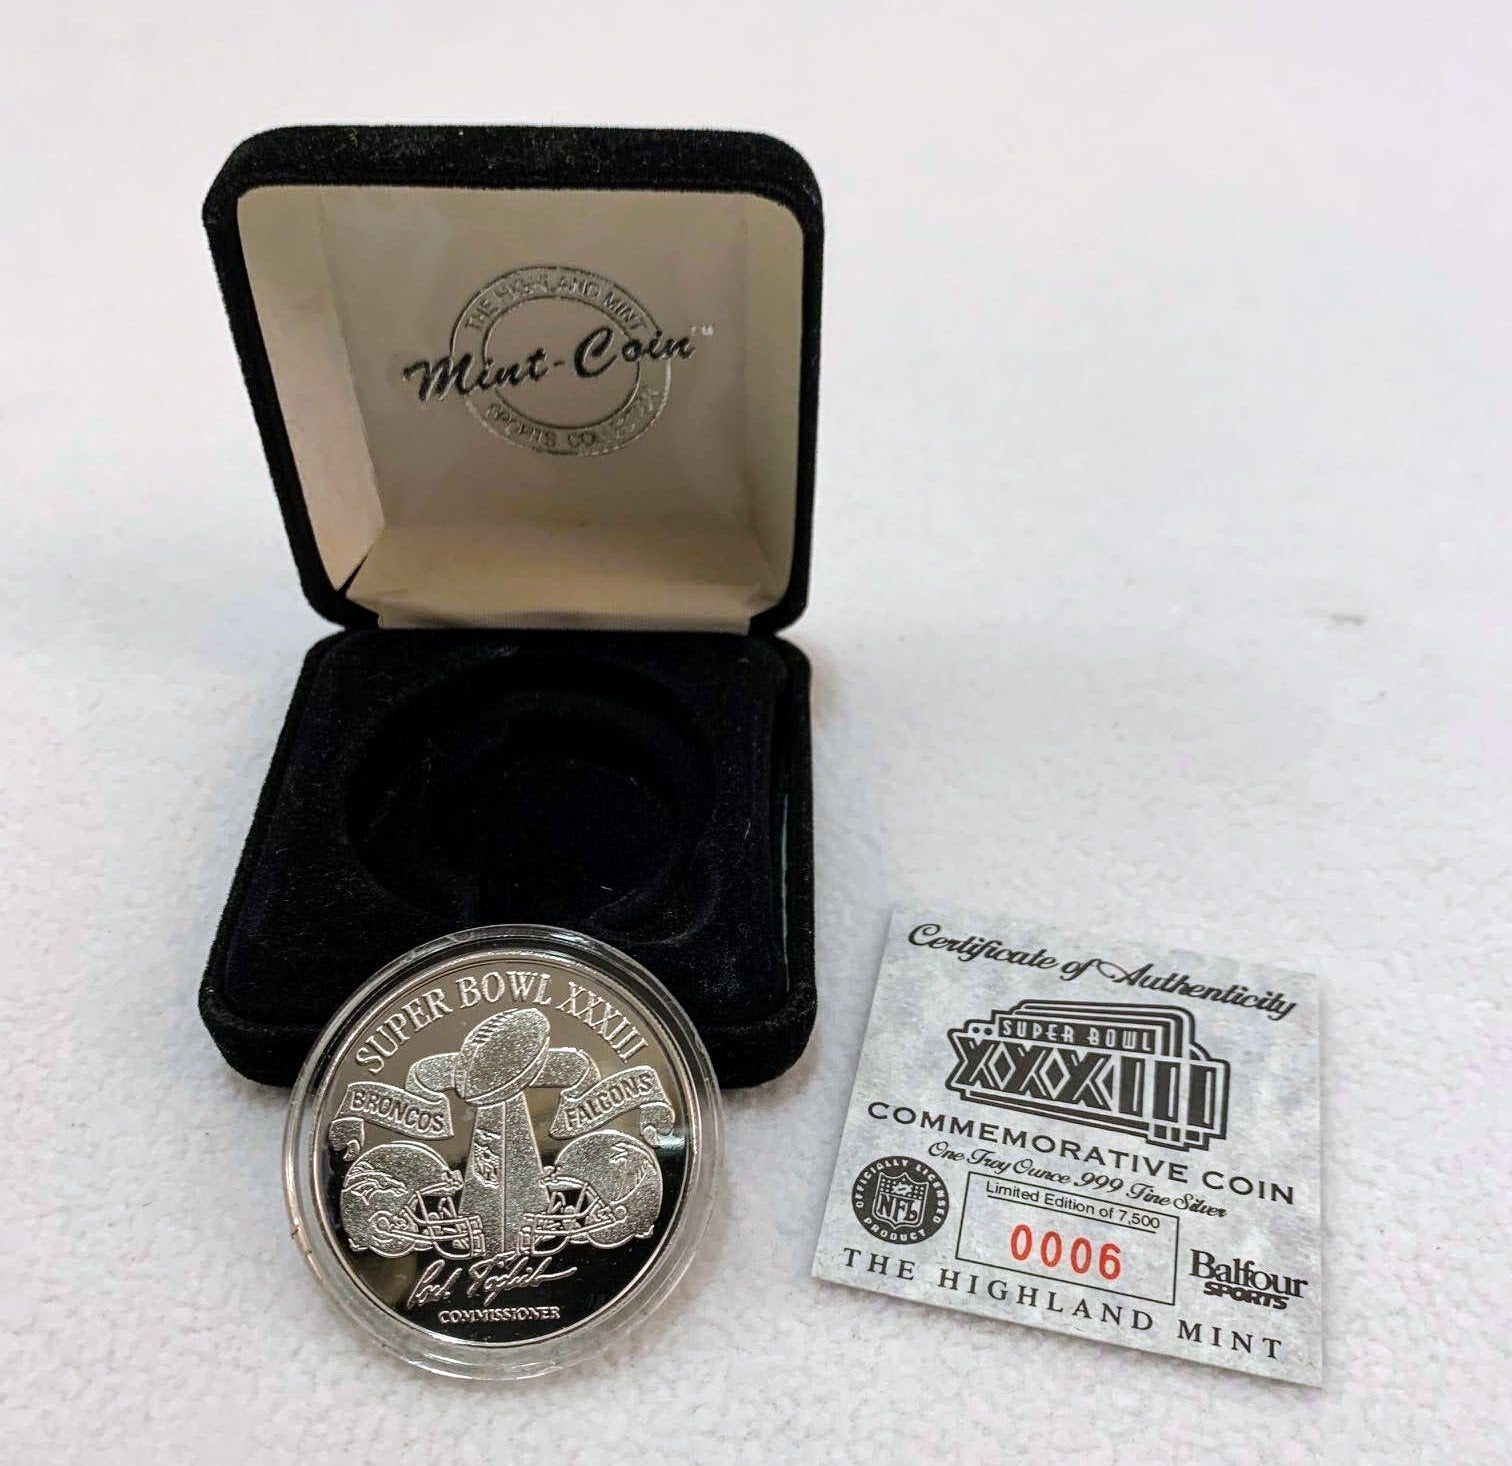 Super Bowl 33 Highland Mint Coin w/ Case with COA